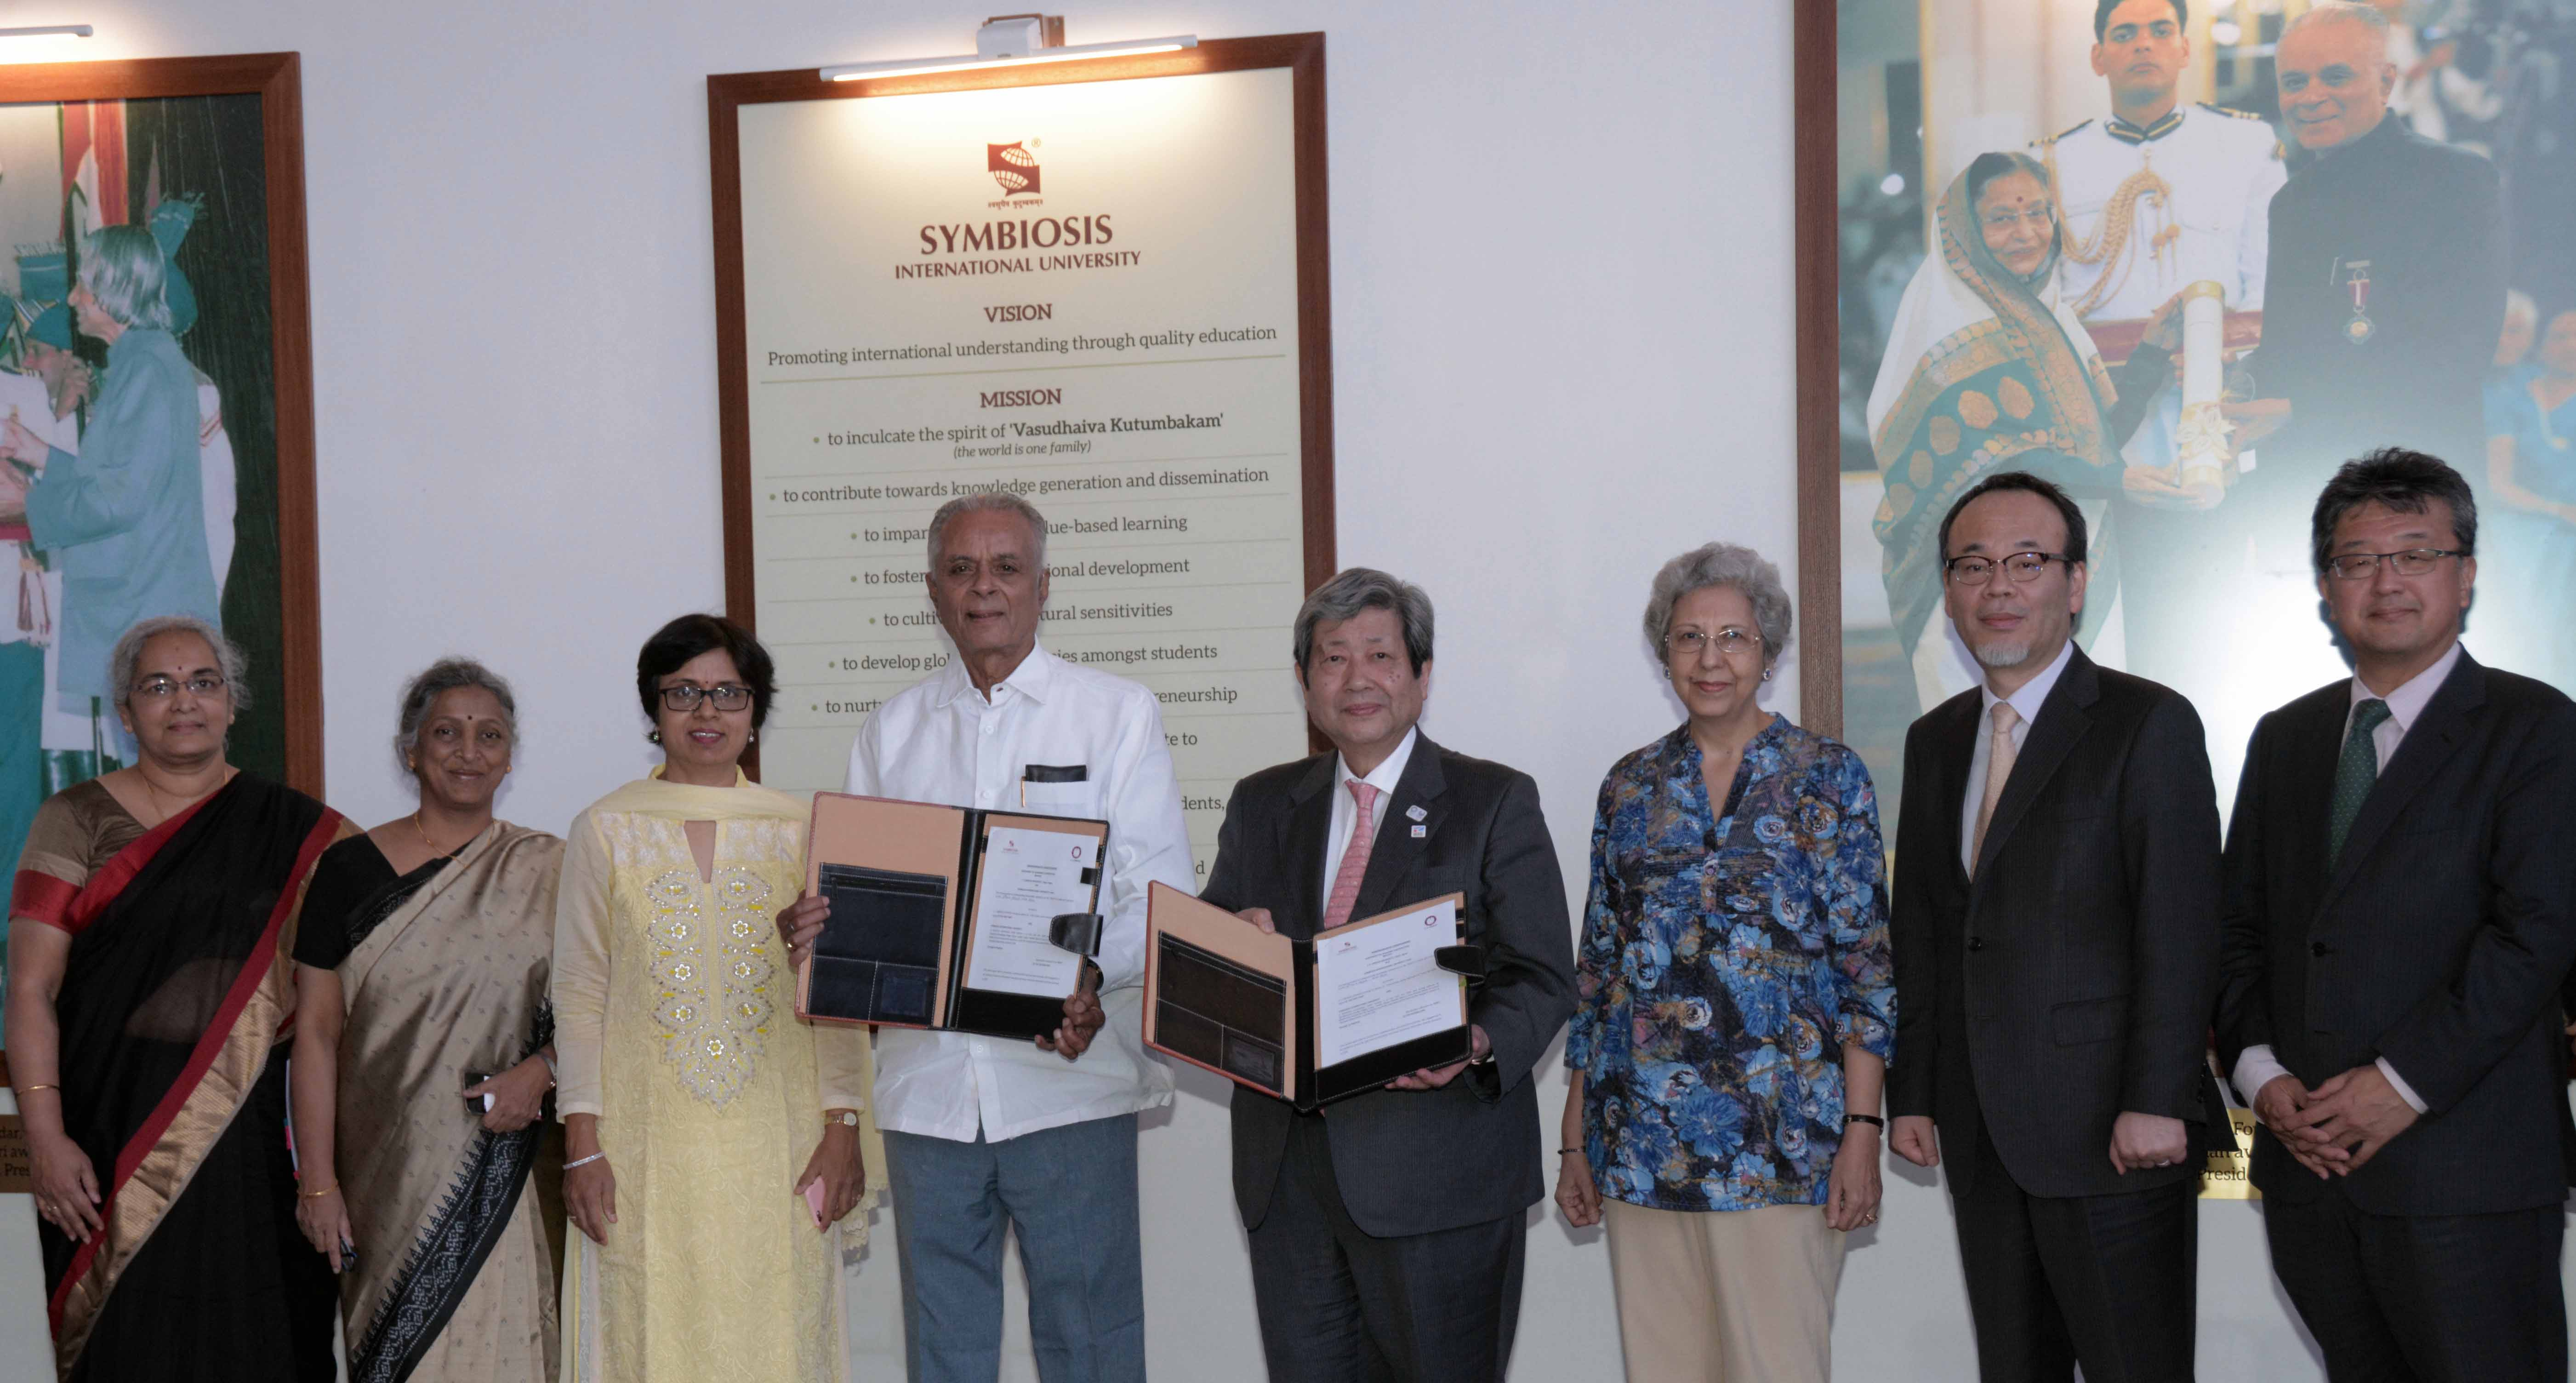 Delegation from J .F Oberlin University, Japan visits Symbiosis International University